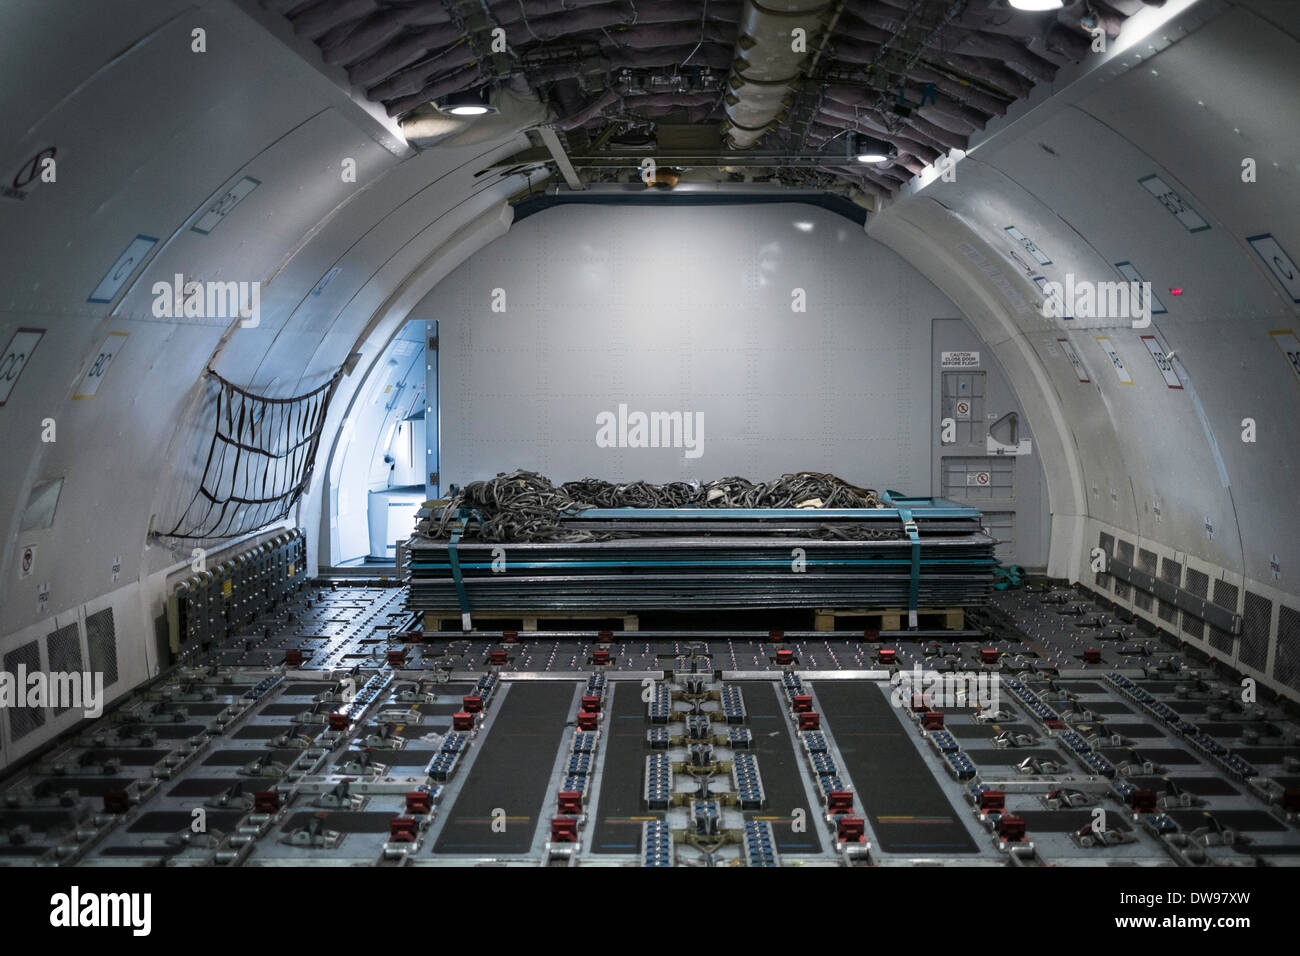 Airplane cargo interior stockfotos airplane cargo for Interieur 747 cargo